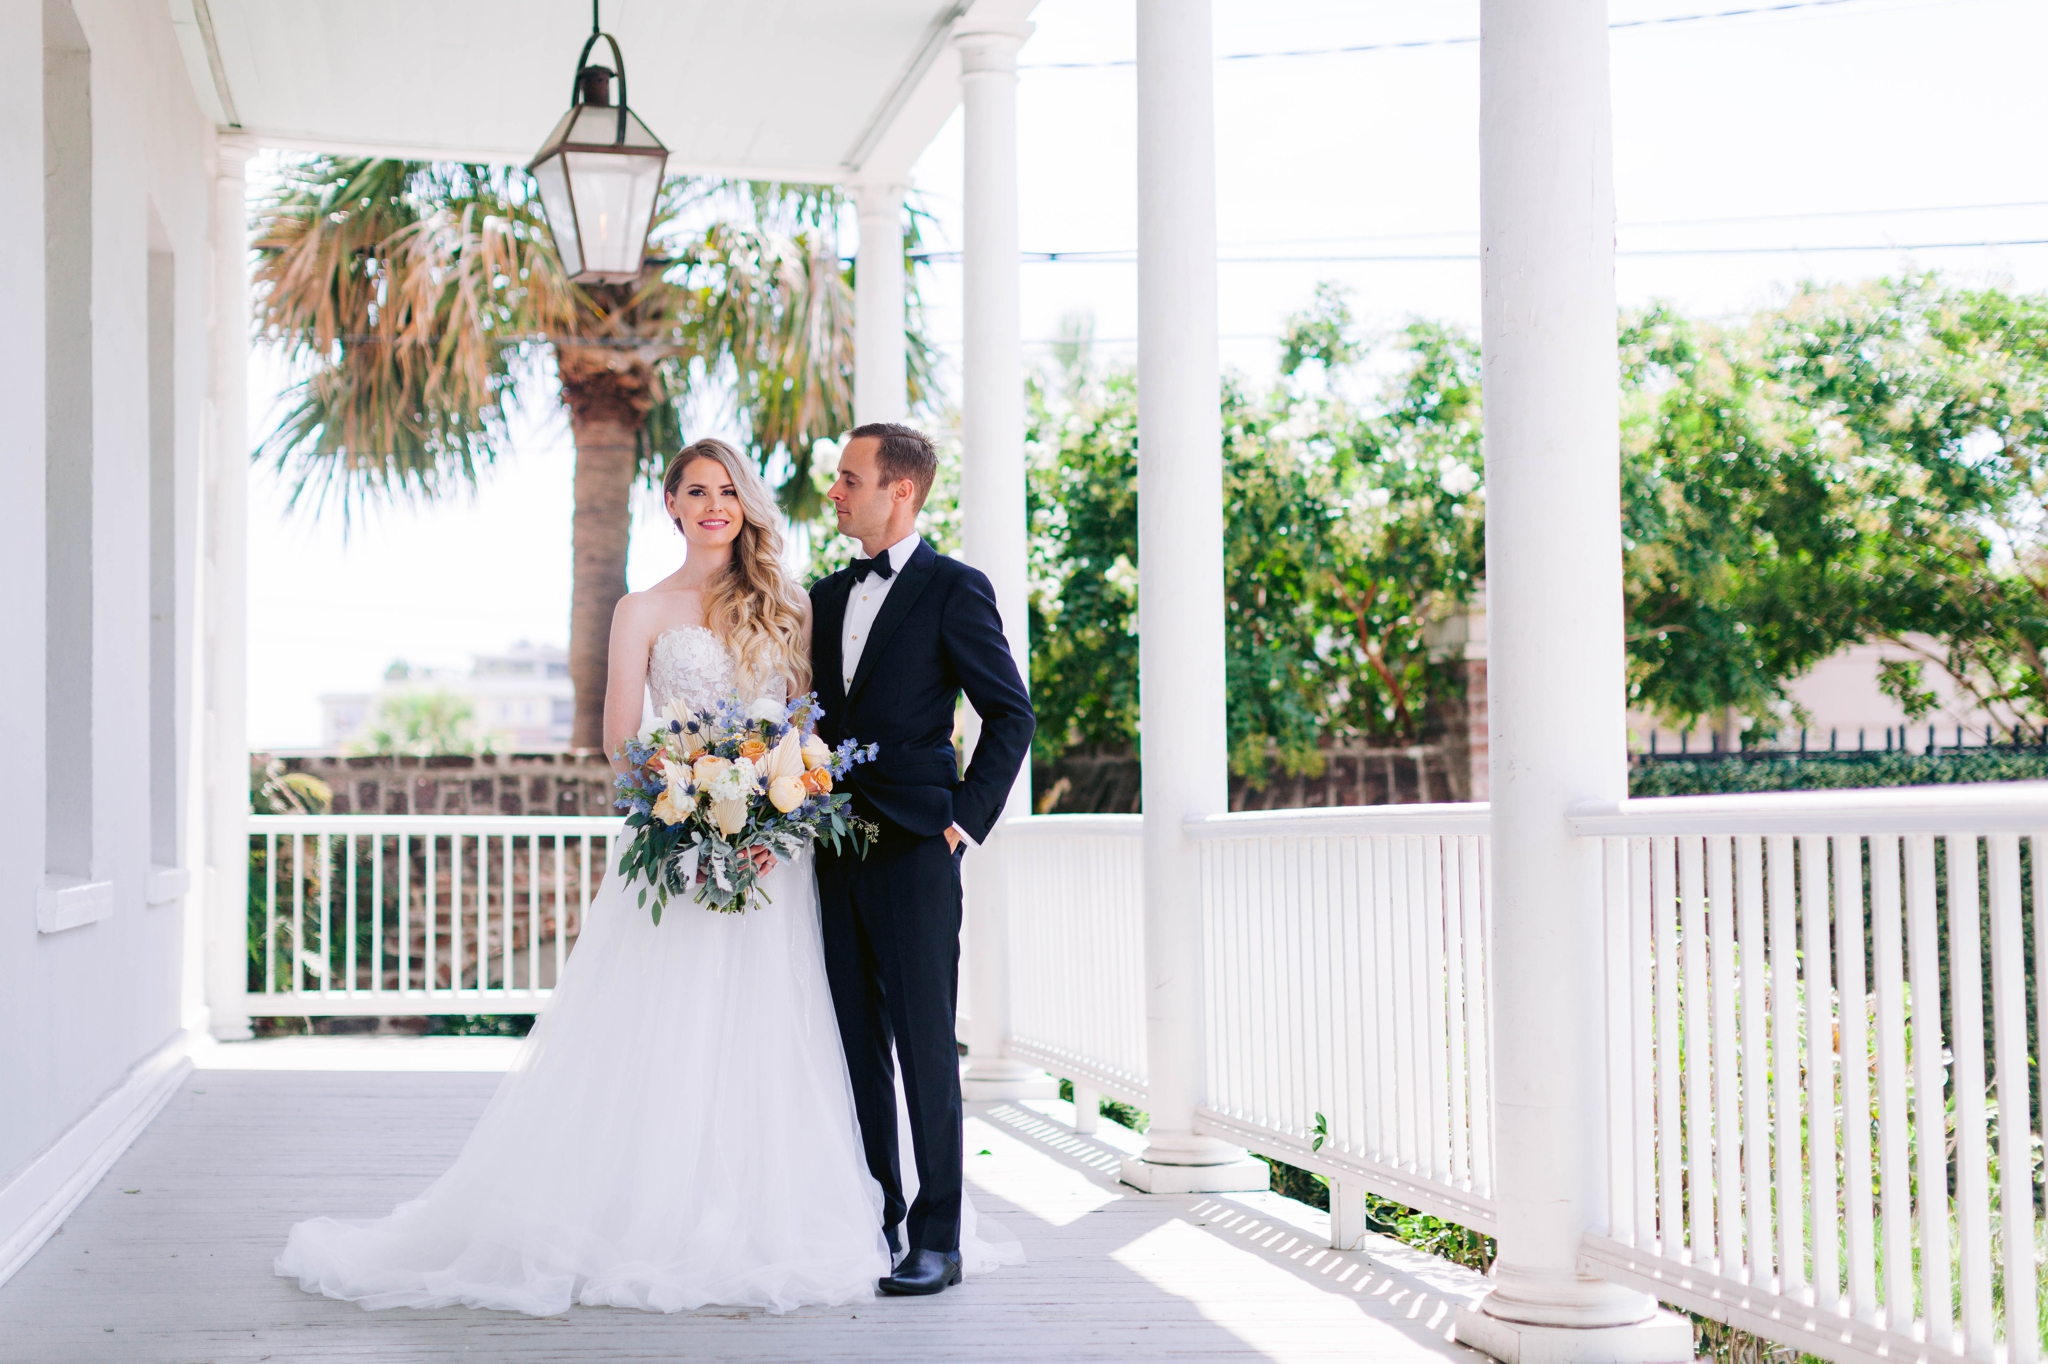 - Bride and Groom Fine art natural light photography - black tucks and a ballgown wedding dress on a white porch with palm trees in the background  - martha stewart weddings - style me pretty - Dusty Blue Wedding Inspiration - fine art photography - Honolulu, Oahu, Hawaii Wedding Photographer - johanna dye